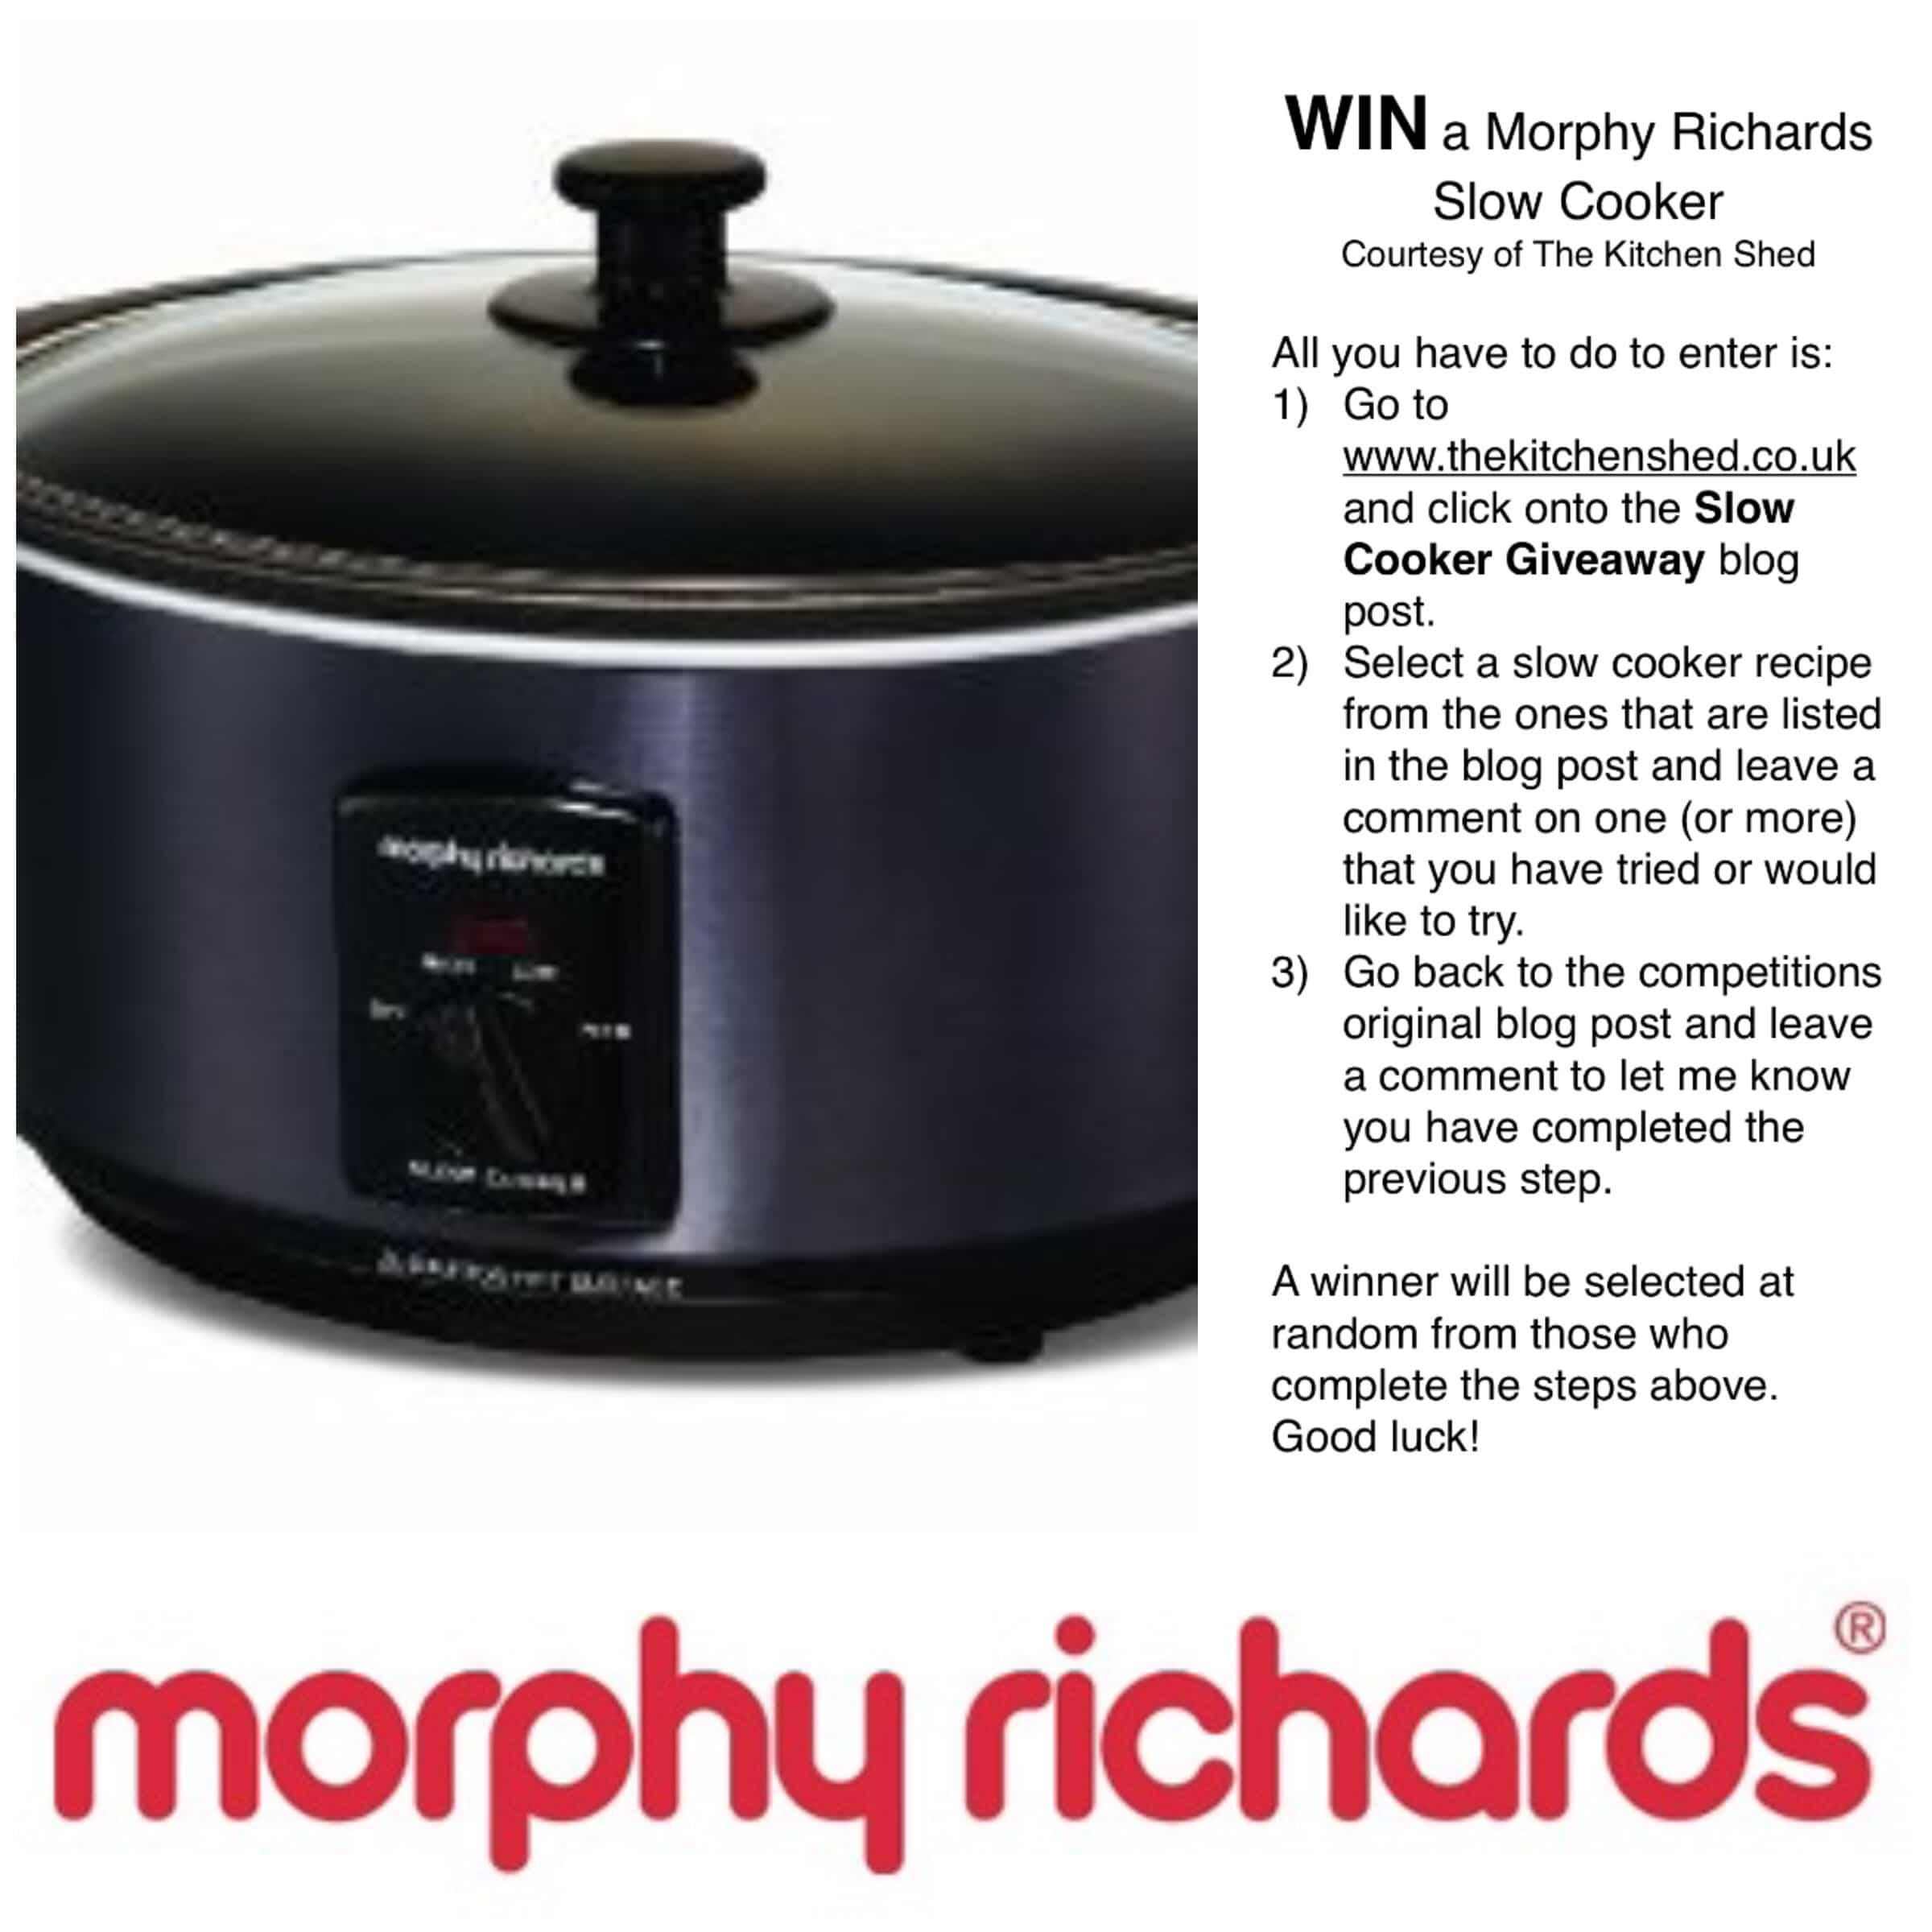 Slow Cooker Giveaway - www.thekitchenshed.co.uk